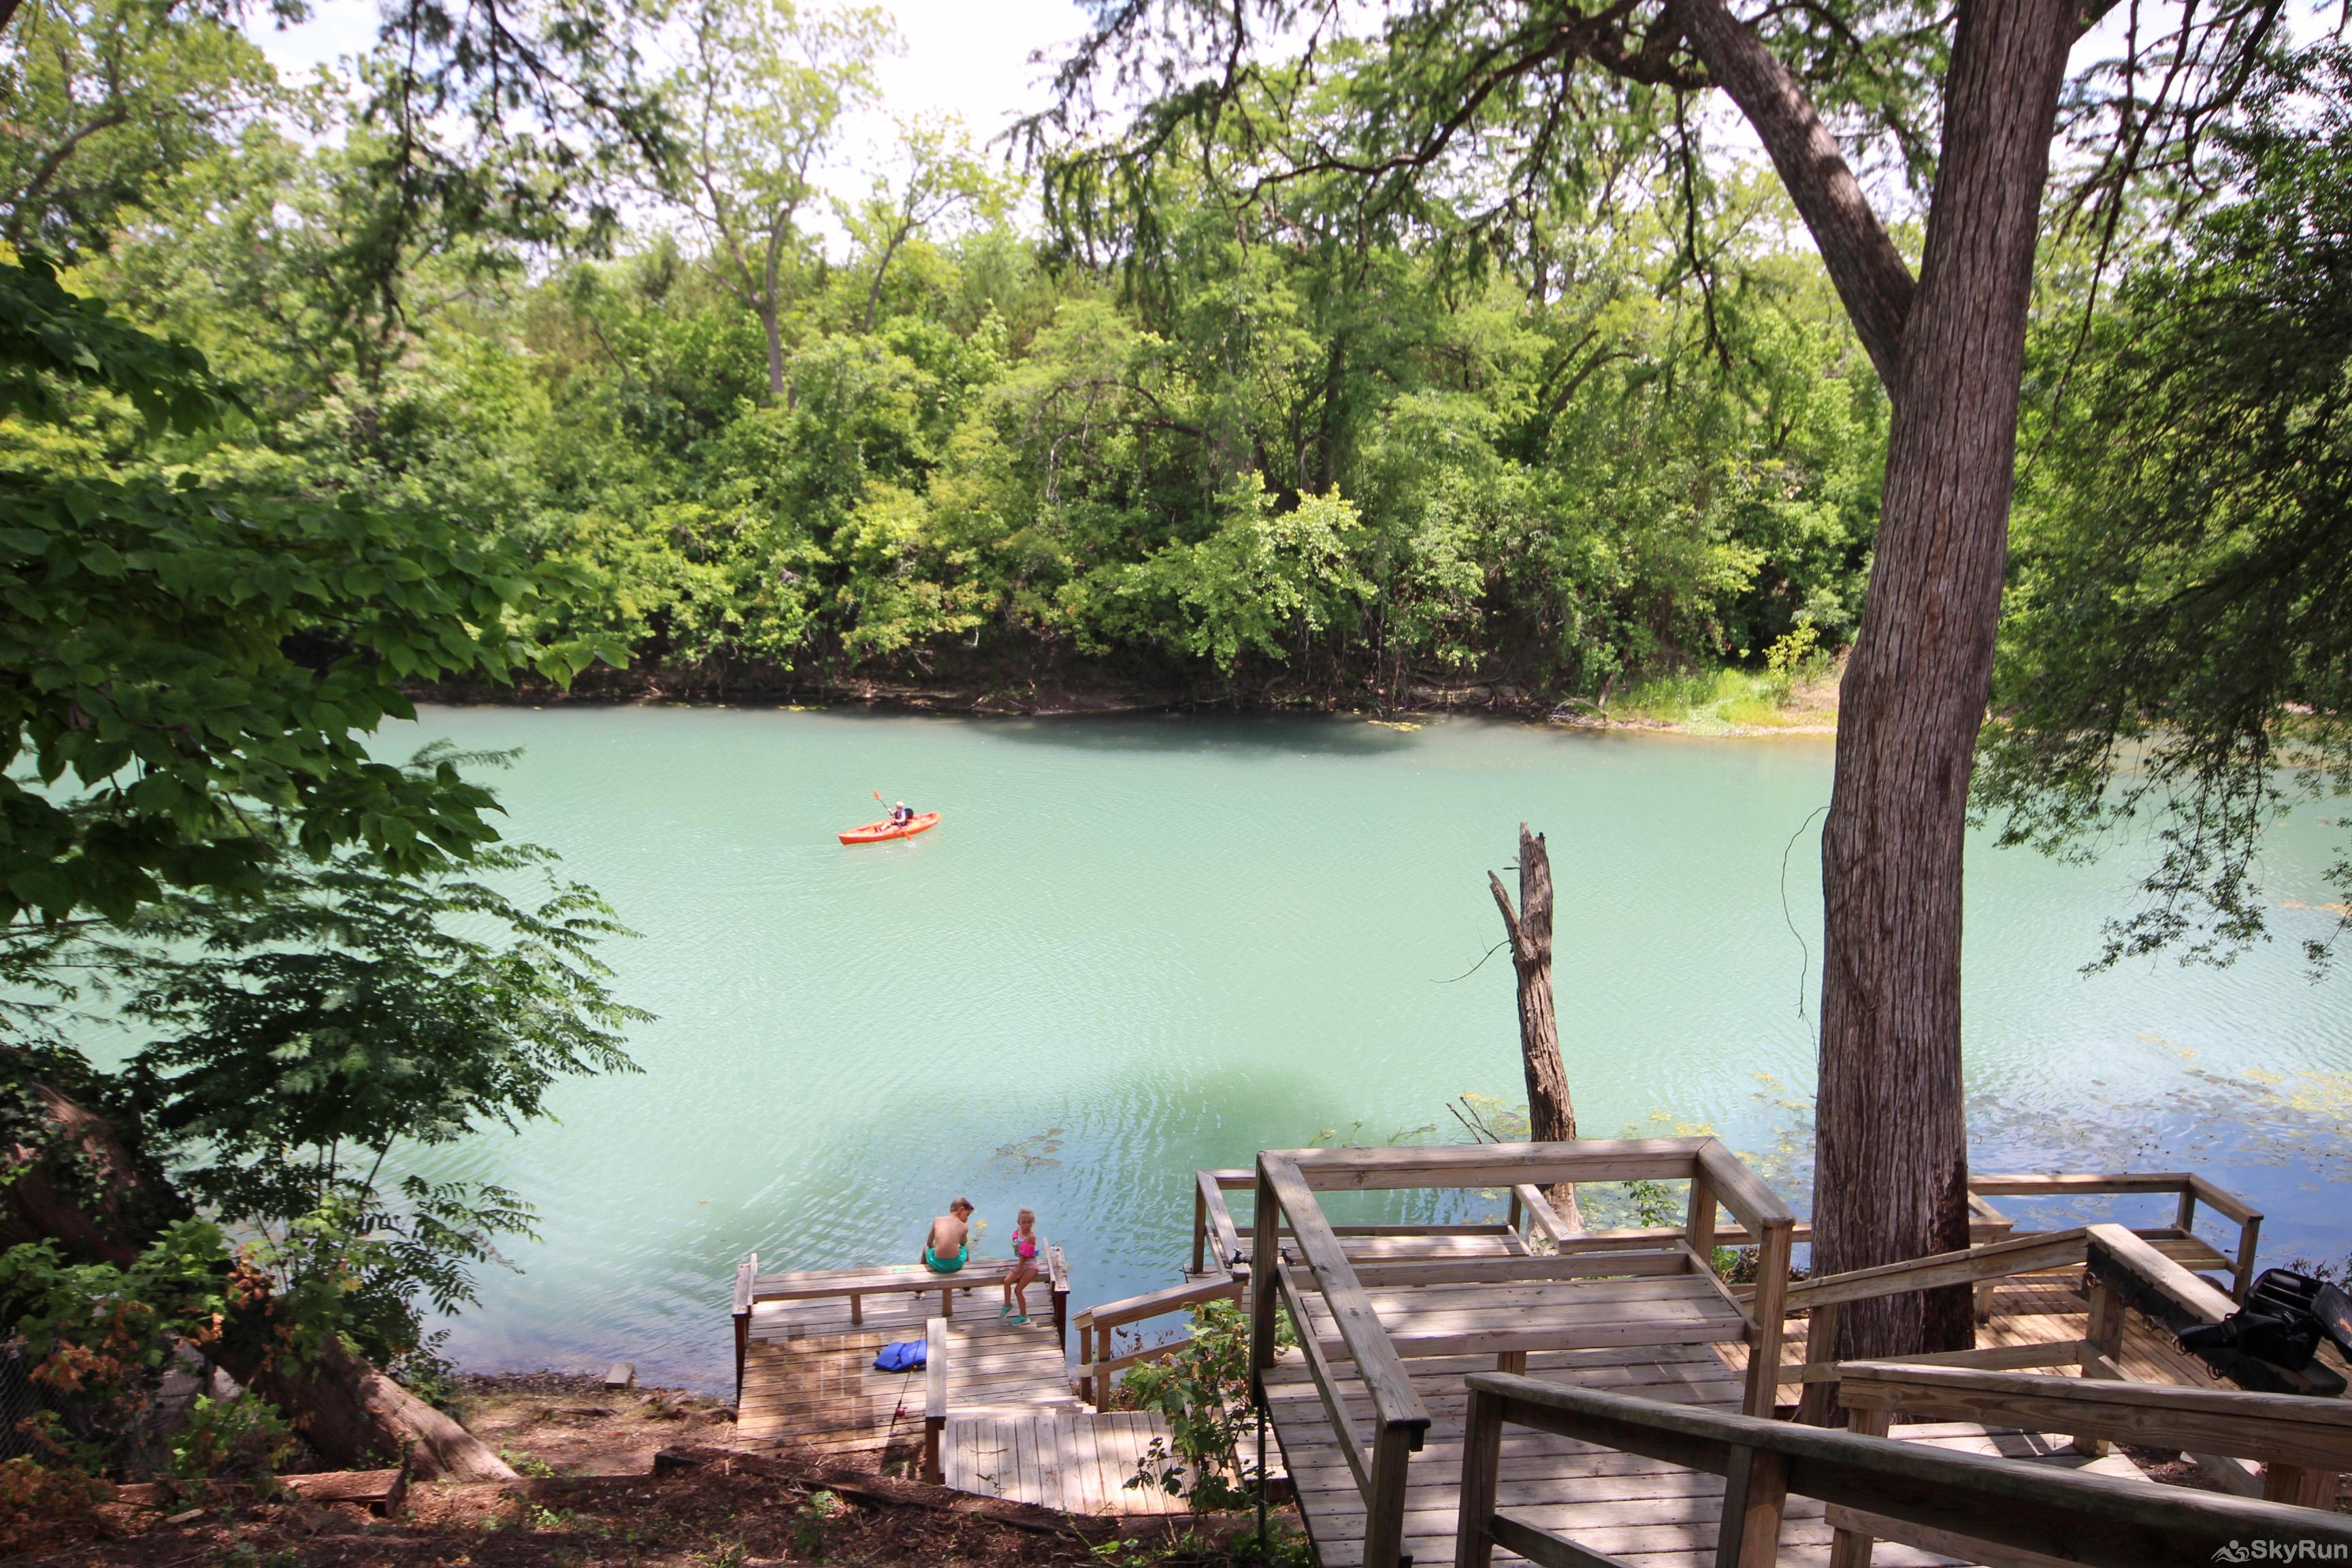 MAVERICK'S RIVER HAUS & GUEST HAUS Perfect place to paddle, swim, and play!